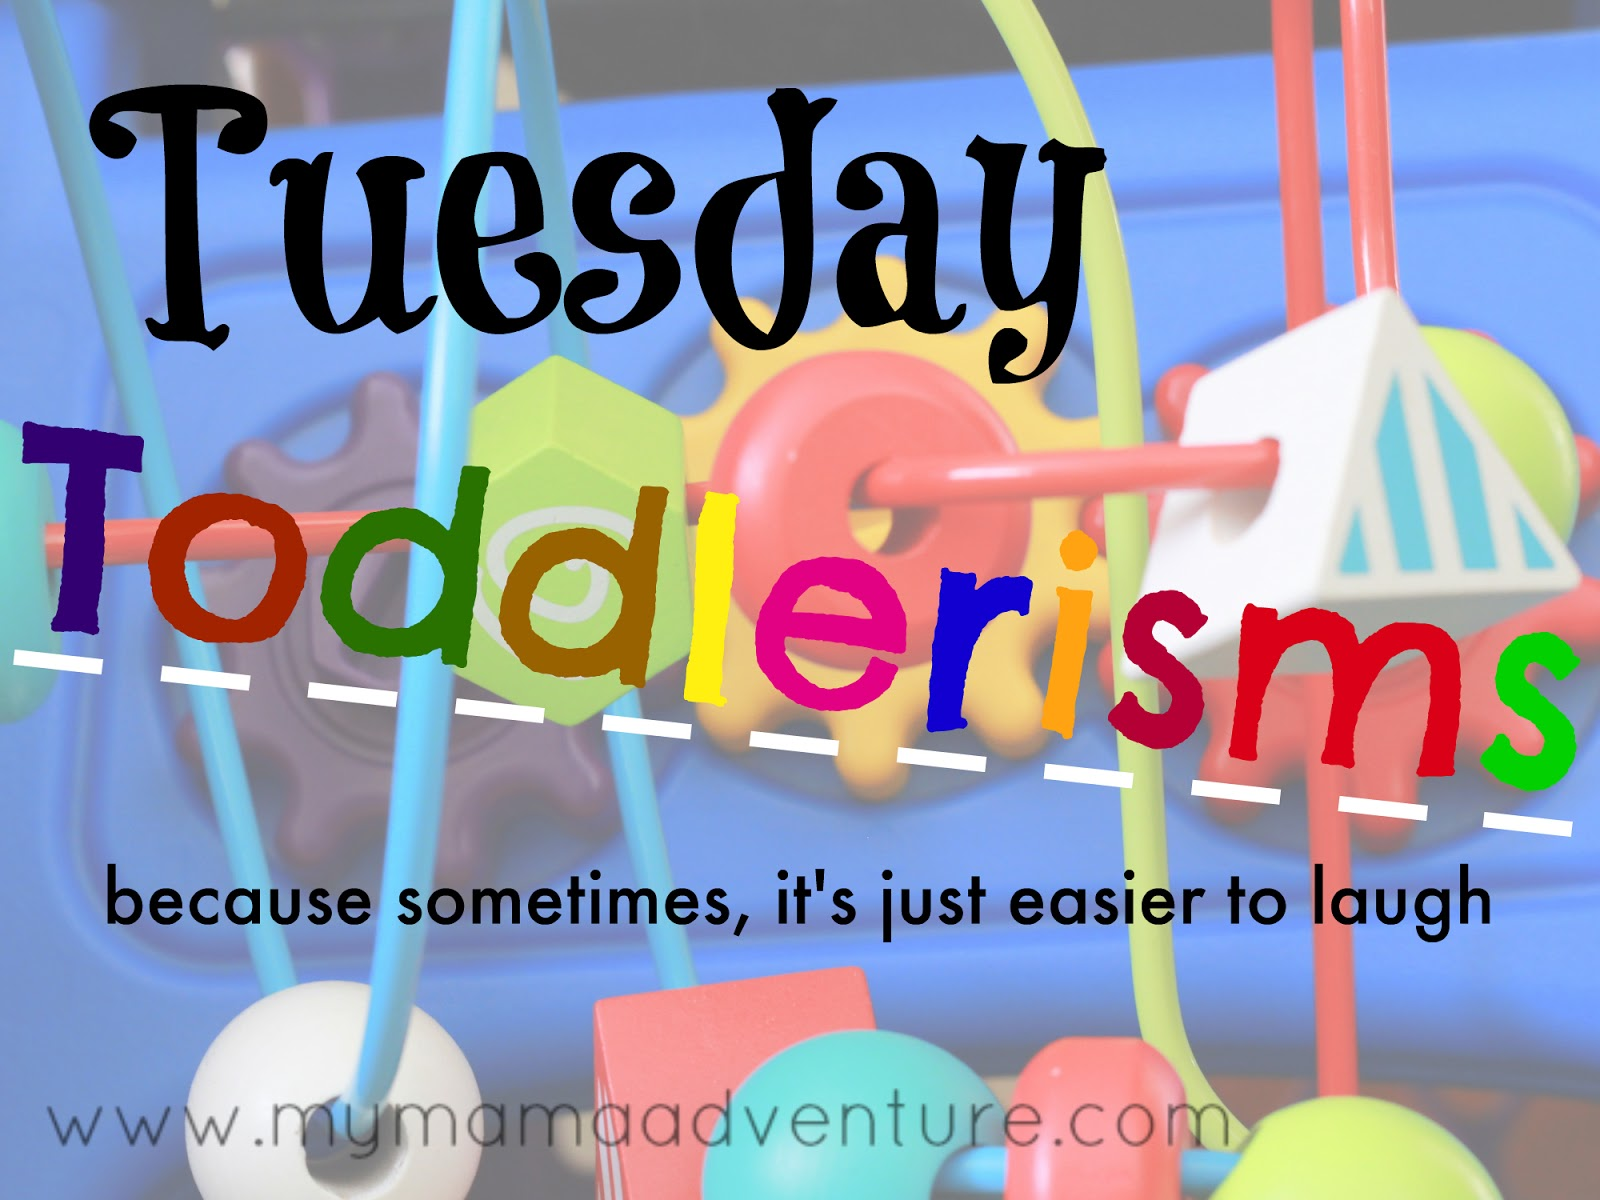 My Mama Adventure - Tuesday Toddlerisms (because sometimes, it's just easier to laugh)